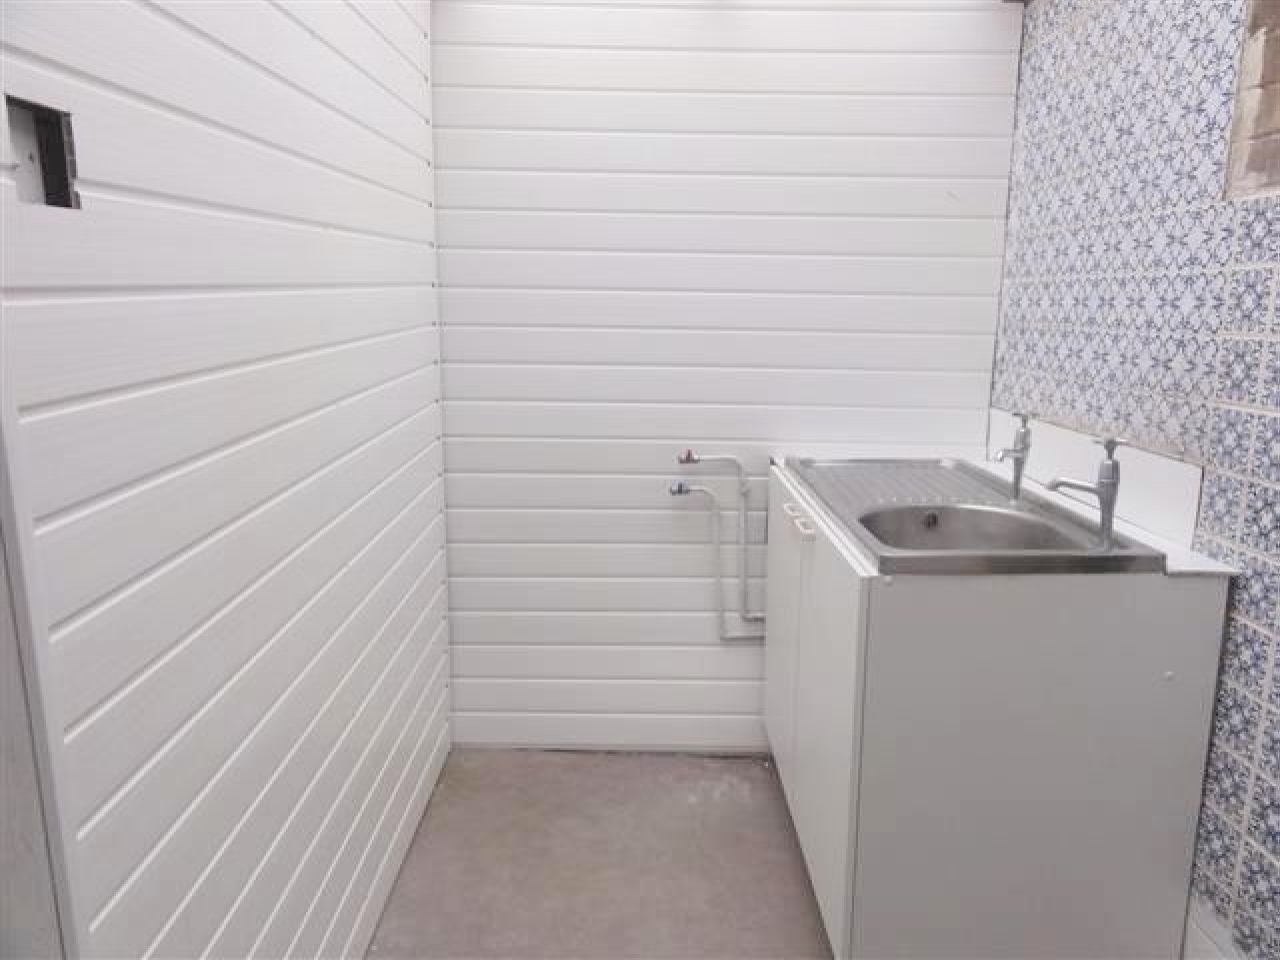 Image 1 of 1 of Laundry, on Accommodation Comprising for